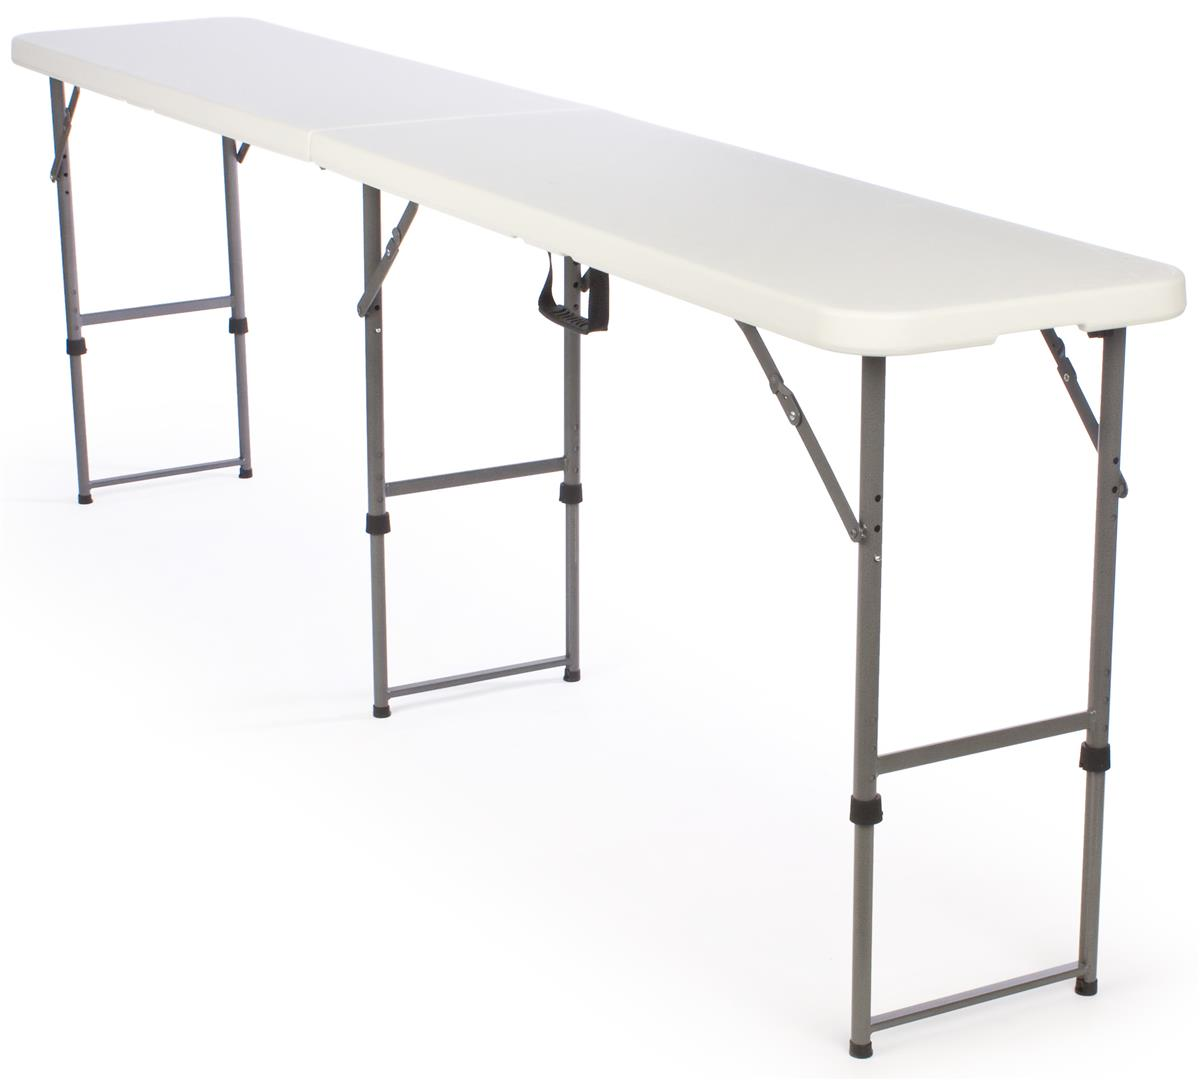 folding tables adjustable height plastic top. Black Bedroom Furniture Sets. Home Design Ideas